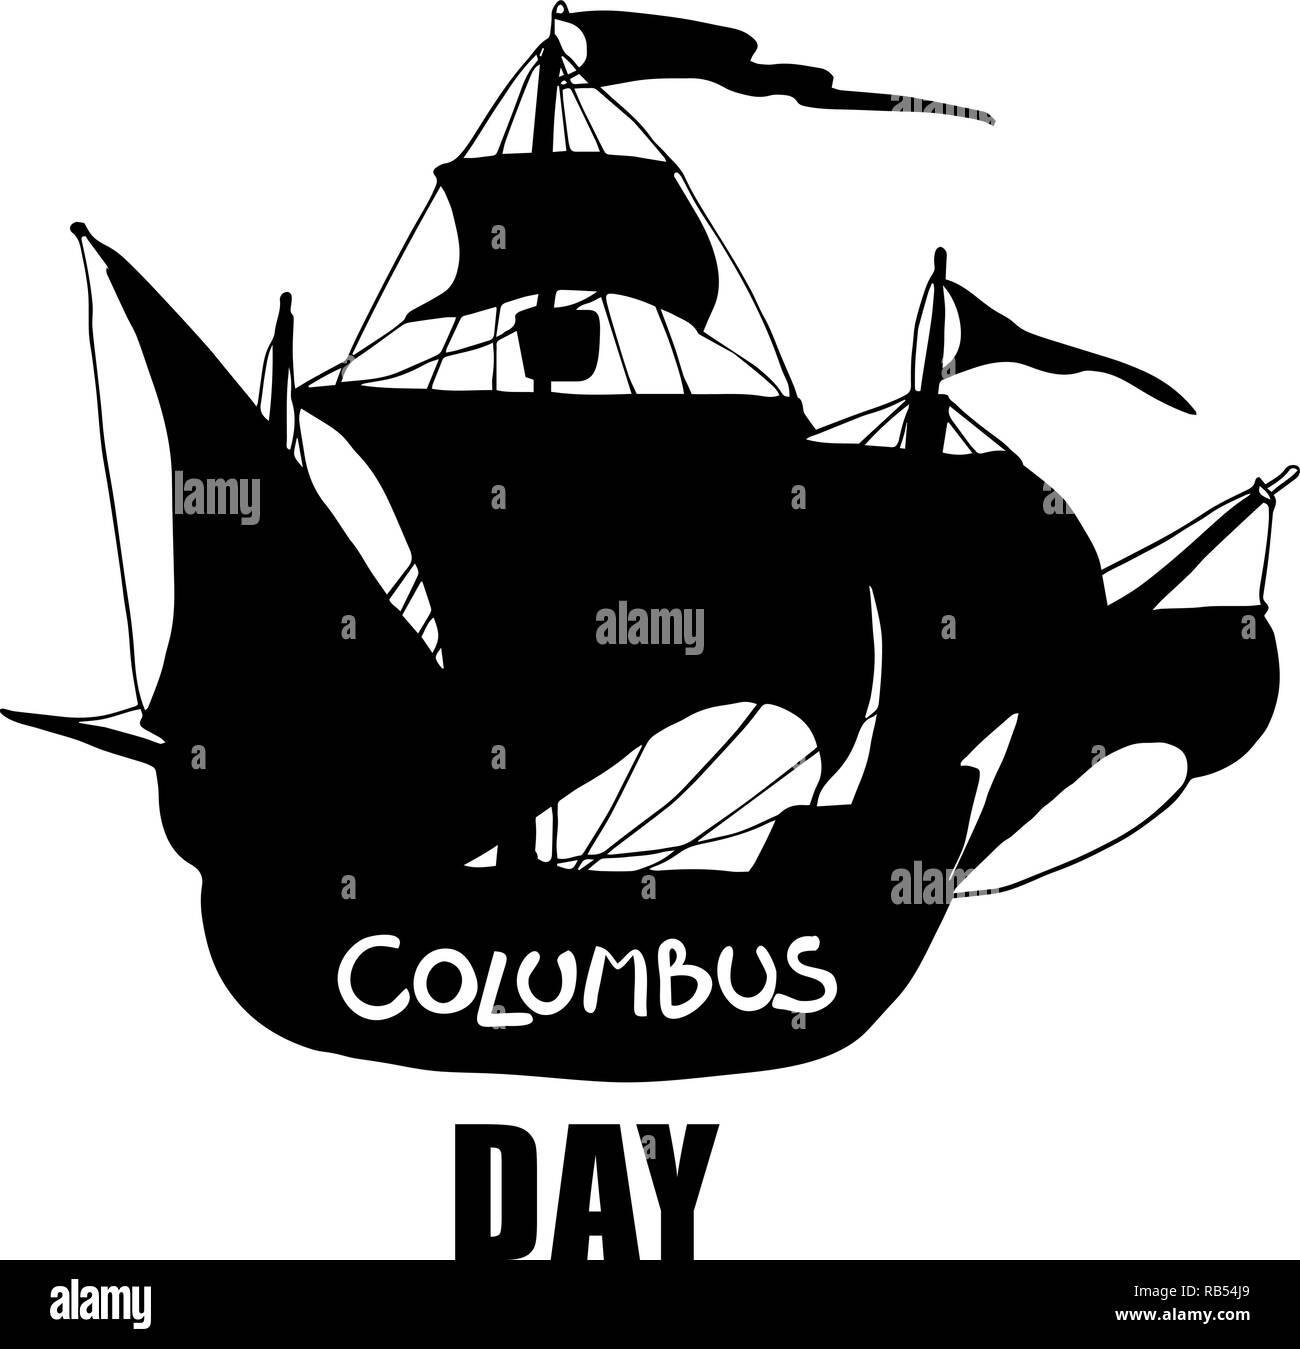 Columbus day greeting card or background. Vector illustration. - Stock Image